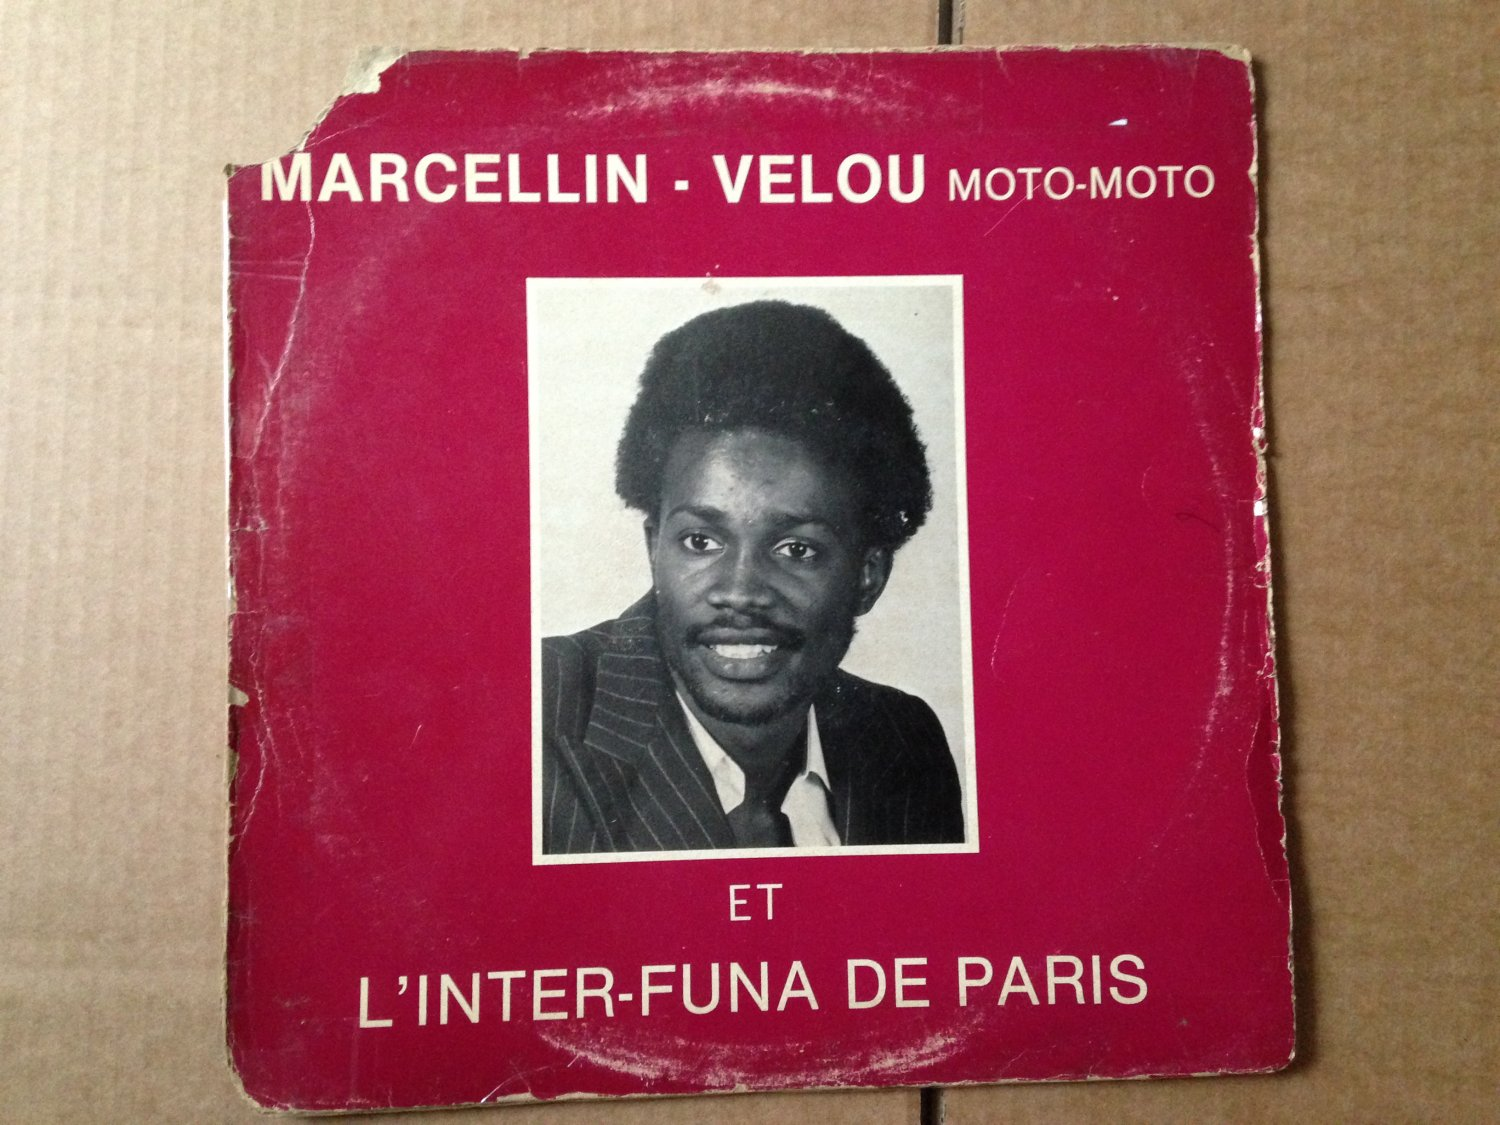 MARCELLIN VELOU & INTER FUNDA DE PARIS LP ngai na ye CONGO mp3 LISTEN